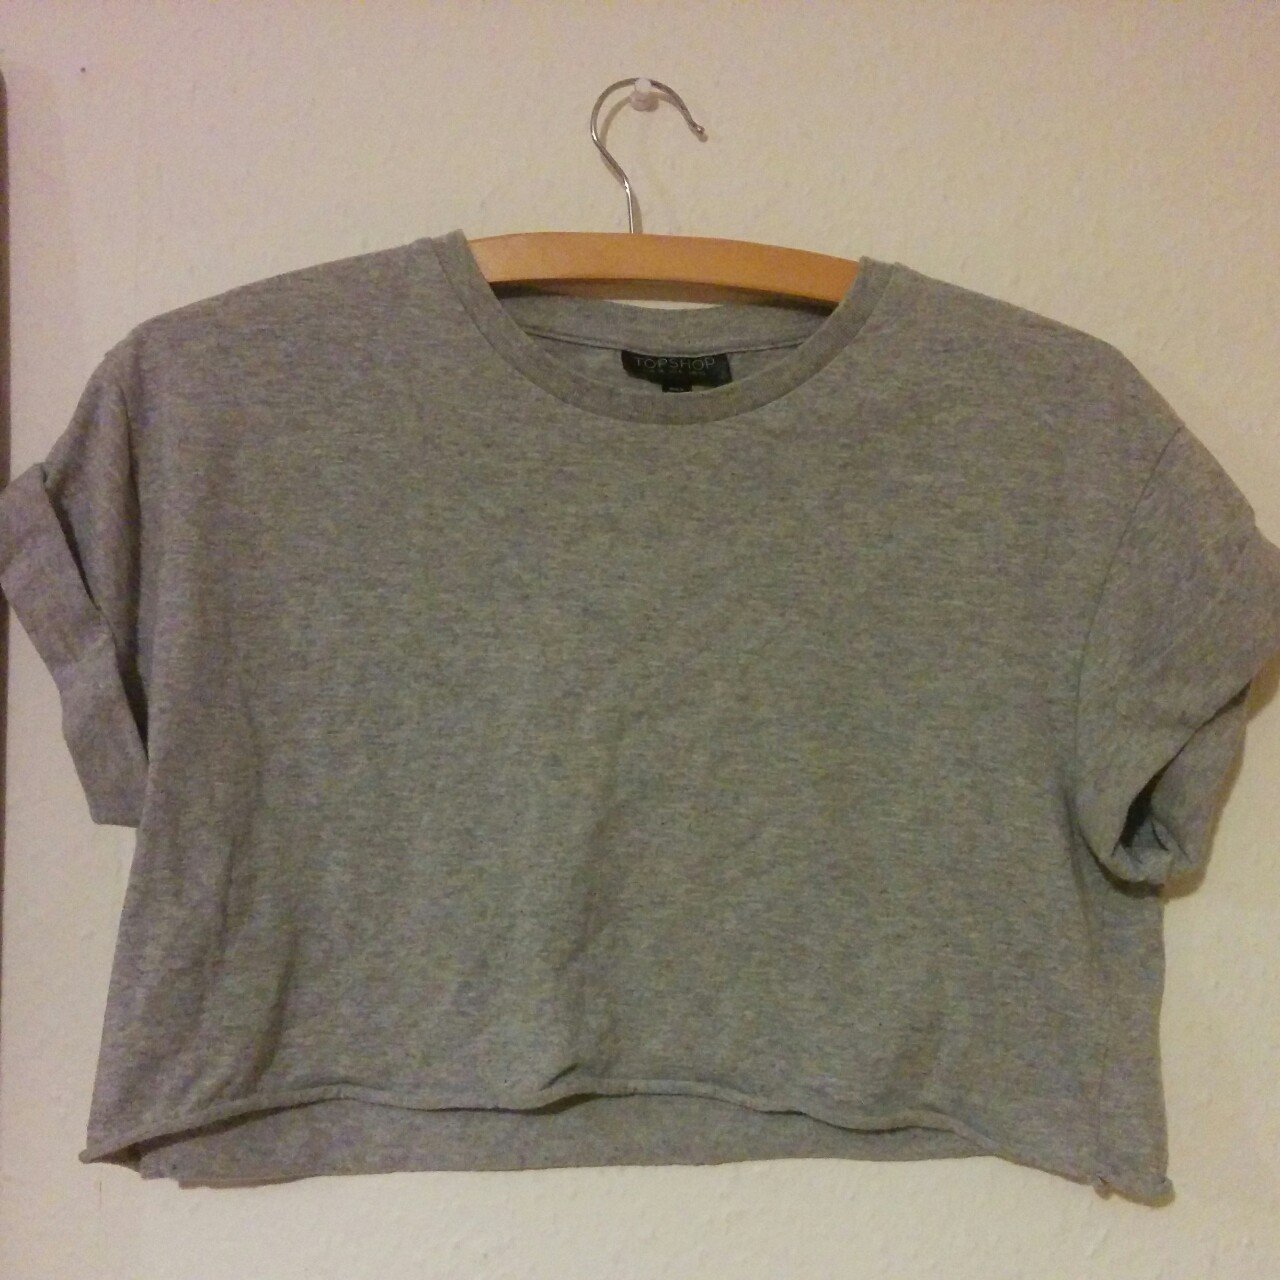 0b5a1422d079e6 Topshop size 10 basic grey cropped T-shirt with rolled up - Depop